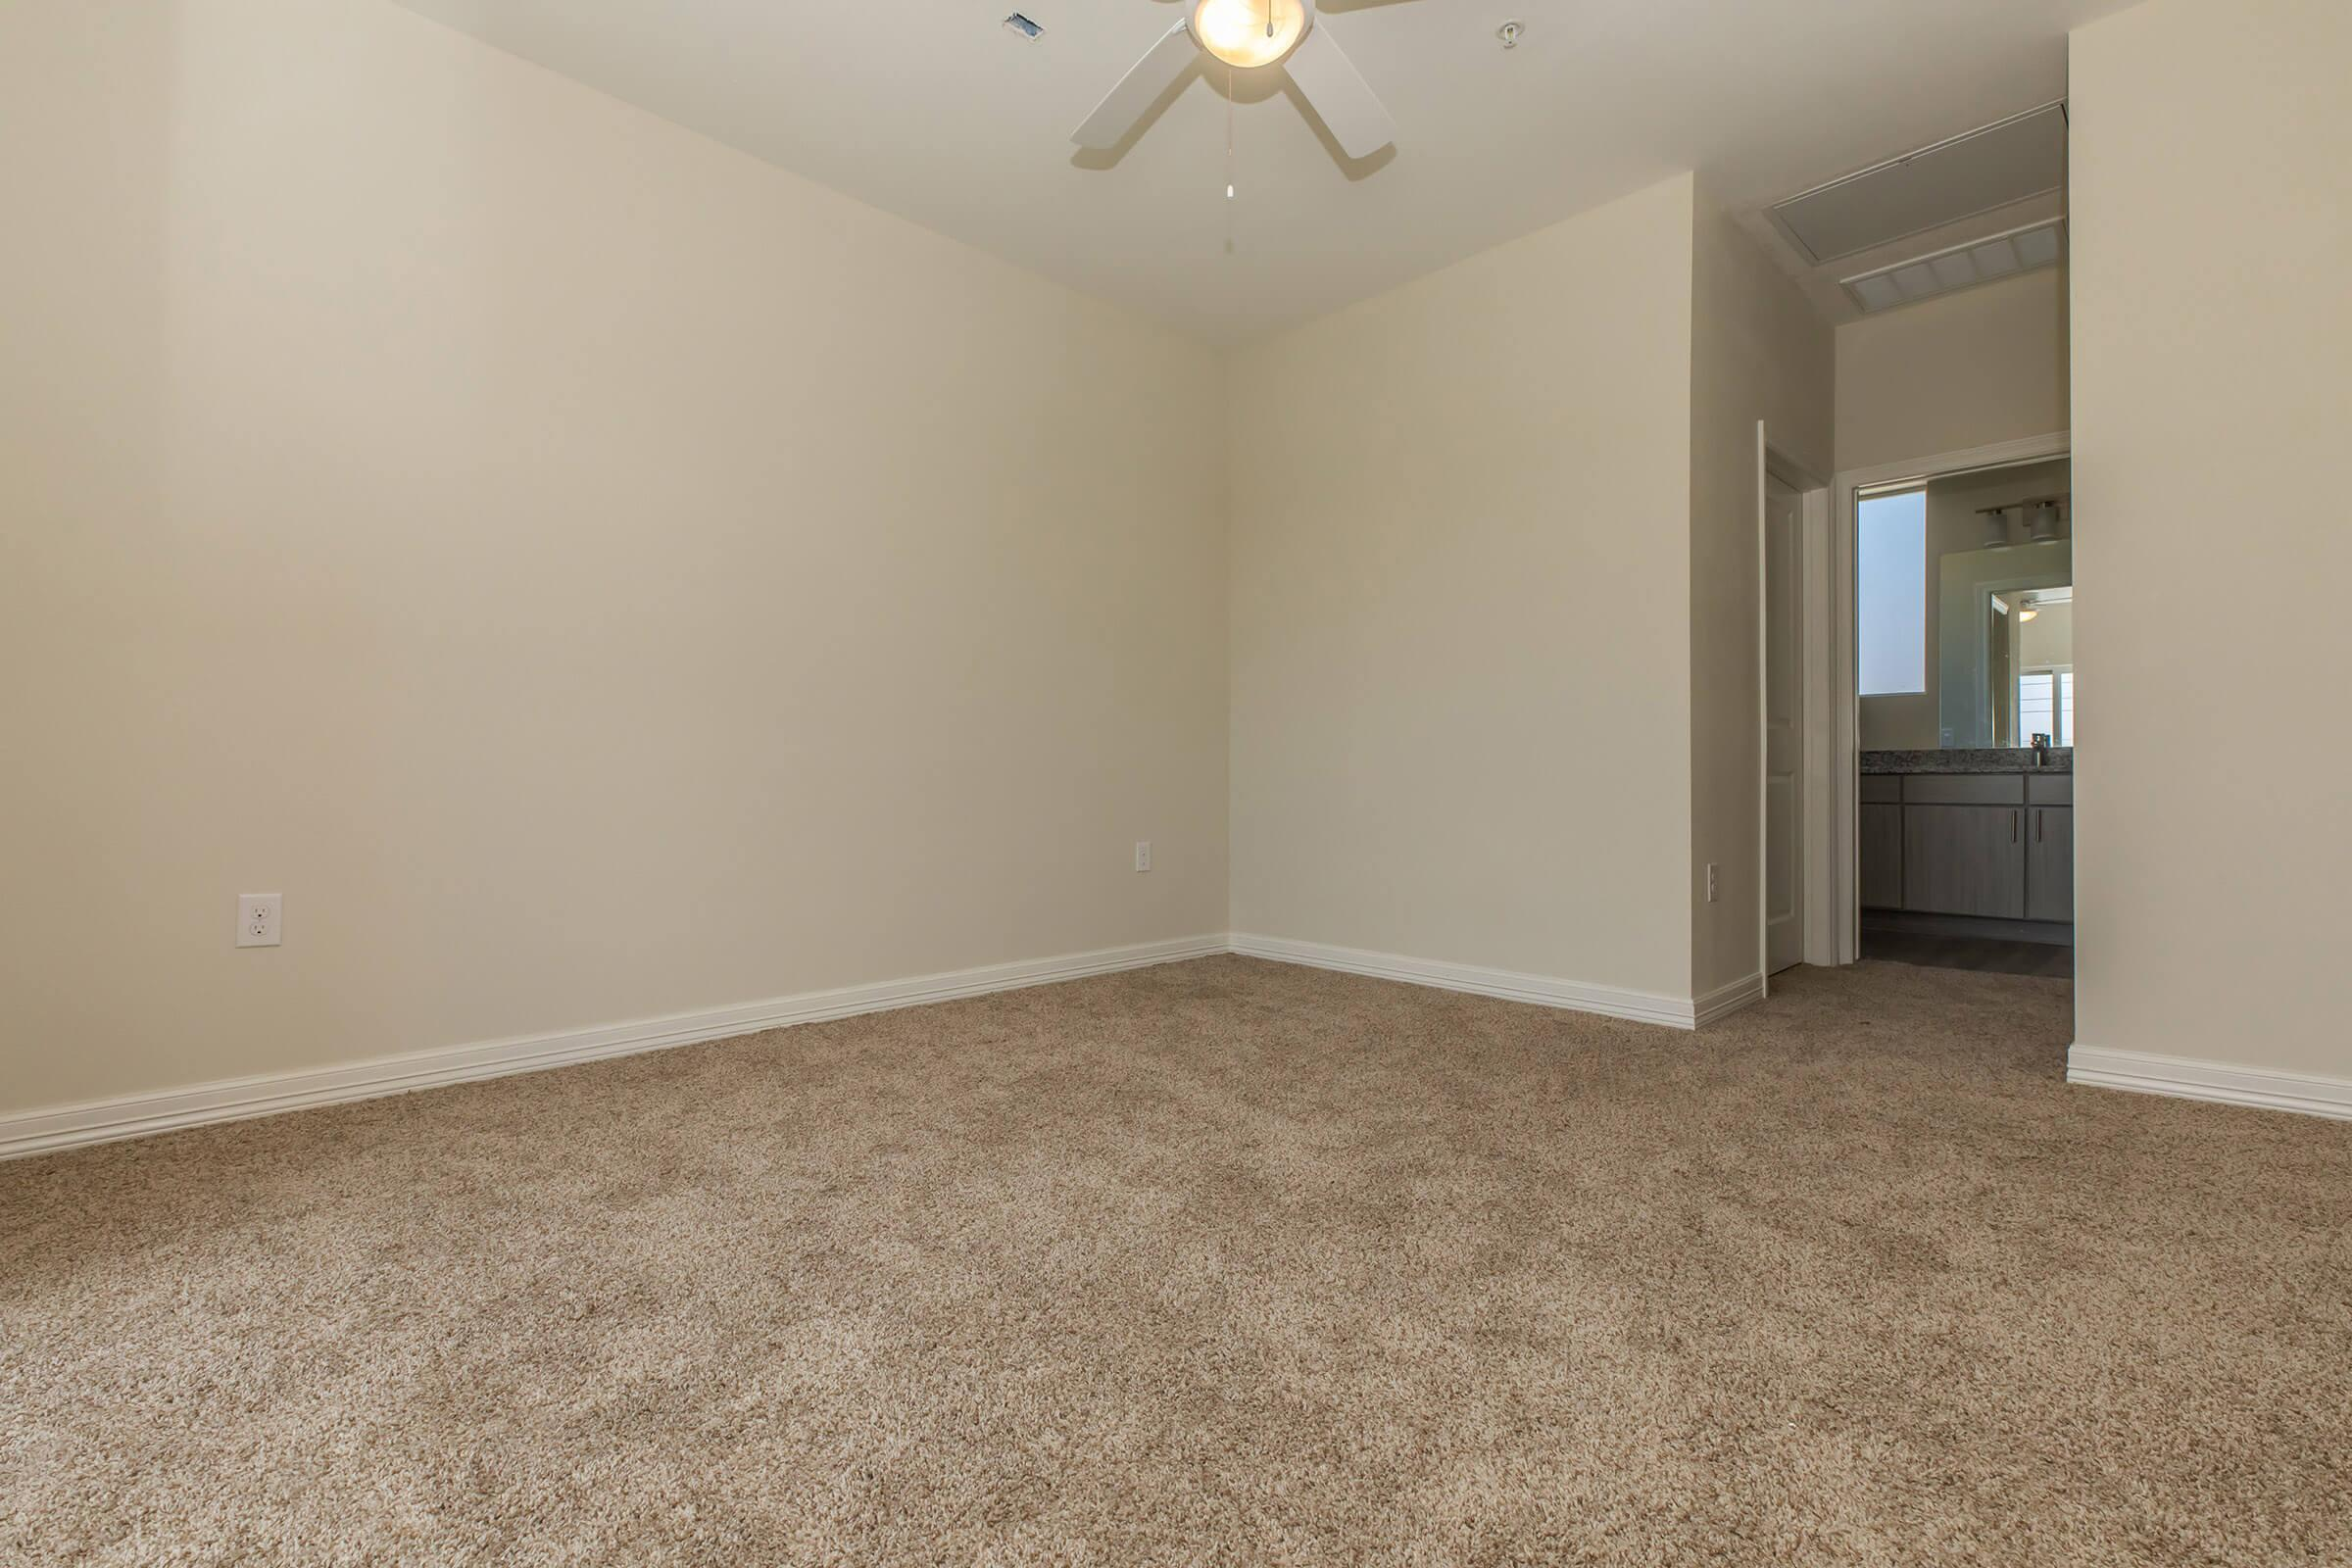 a large empty room